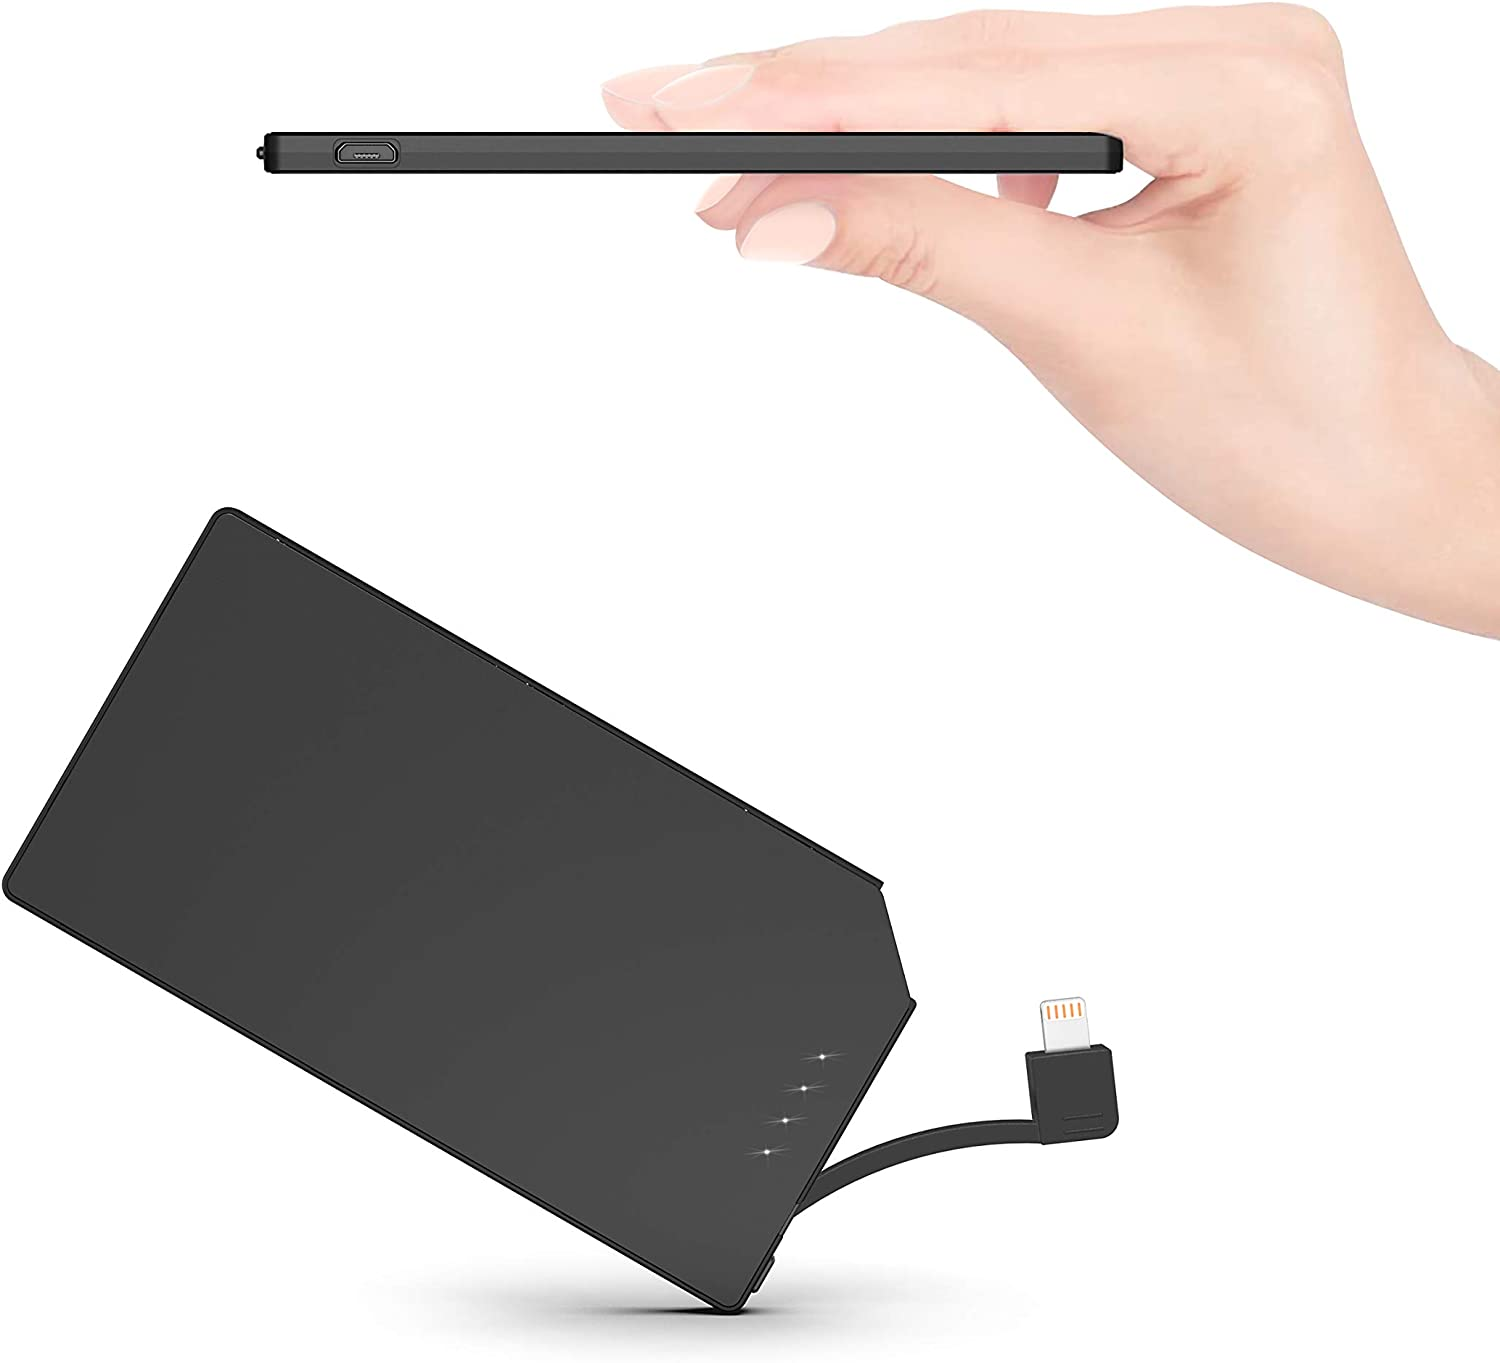 TNTOR Ultra Thin Power Bank Built in Cable Portable Power Charger 5000mAh Wallet & Pocket Size [only 6mm] Slim Compact External Battery Charger Only Suitable for iPhones